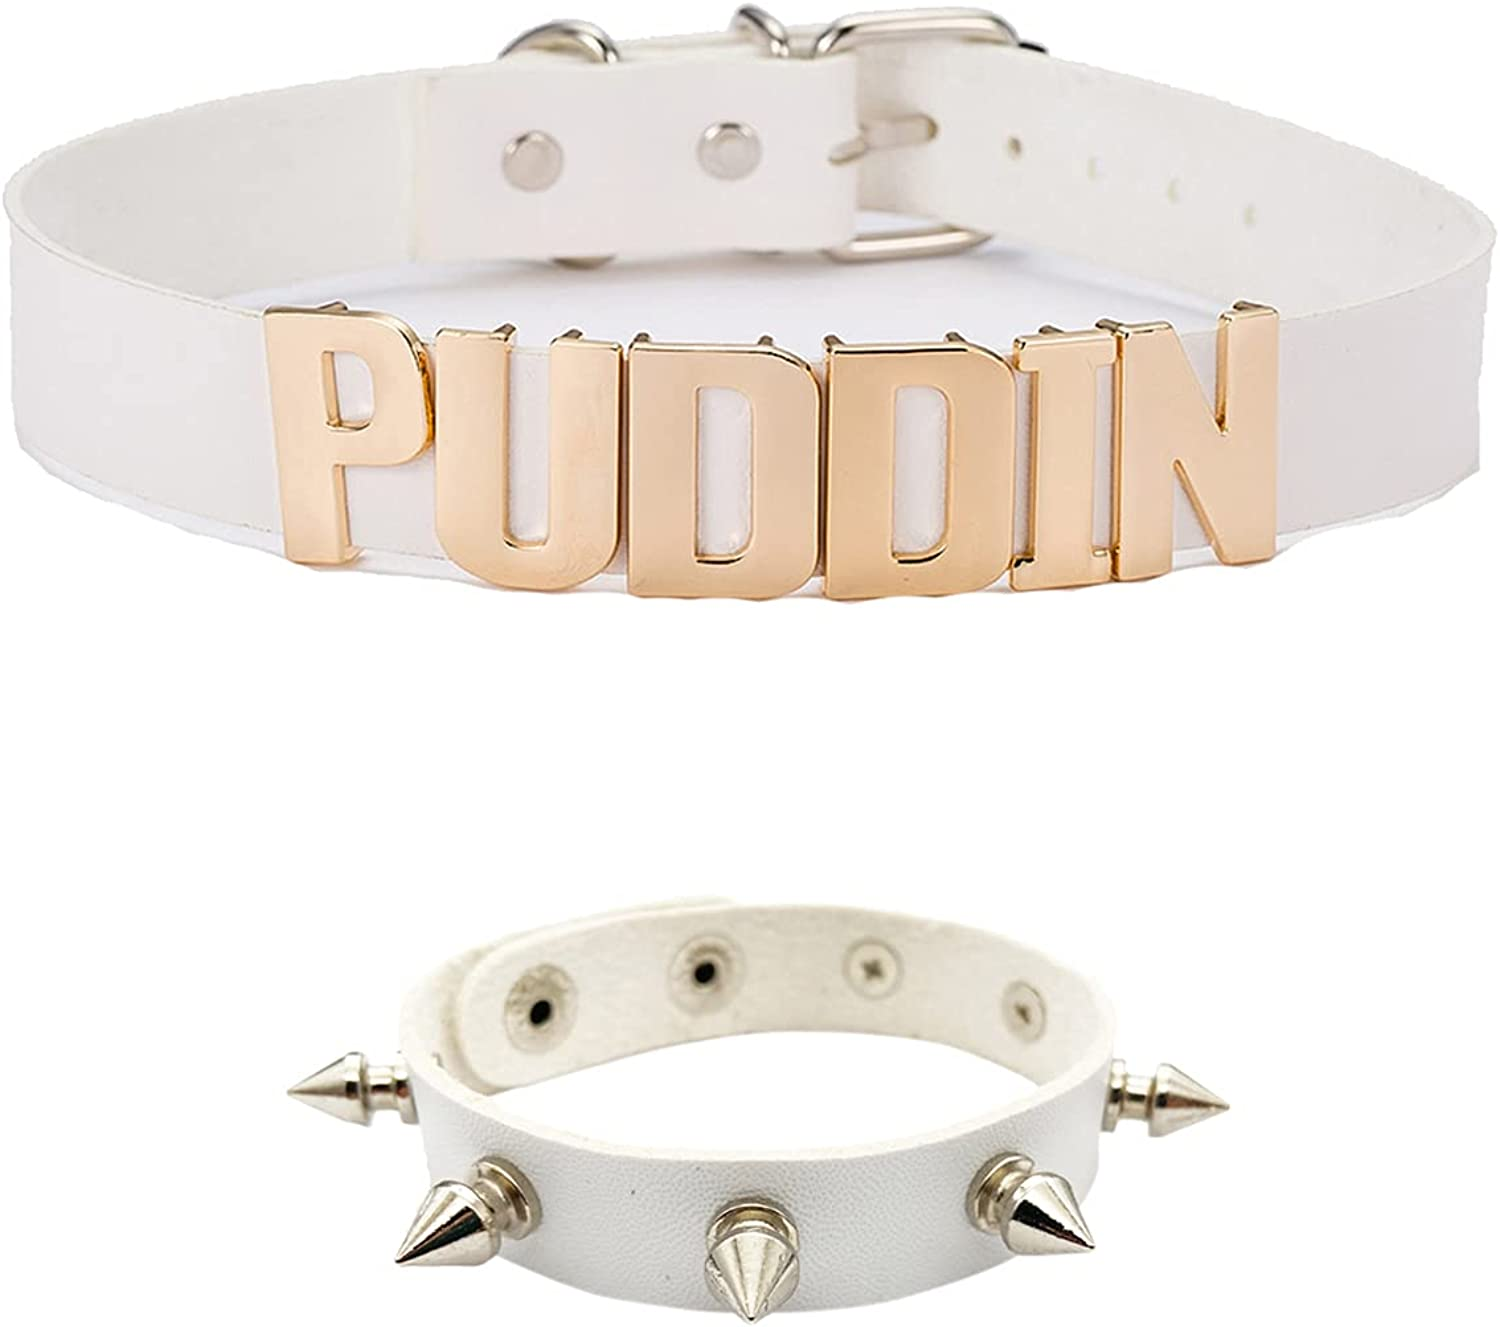 Puddin Choker Necklace Collar Punk Leather Spiked Bracelet for Women Halloween Costume Cosplay